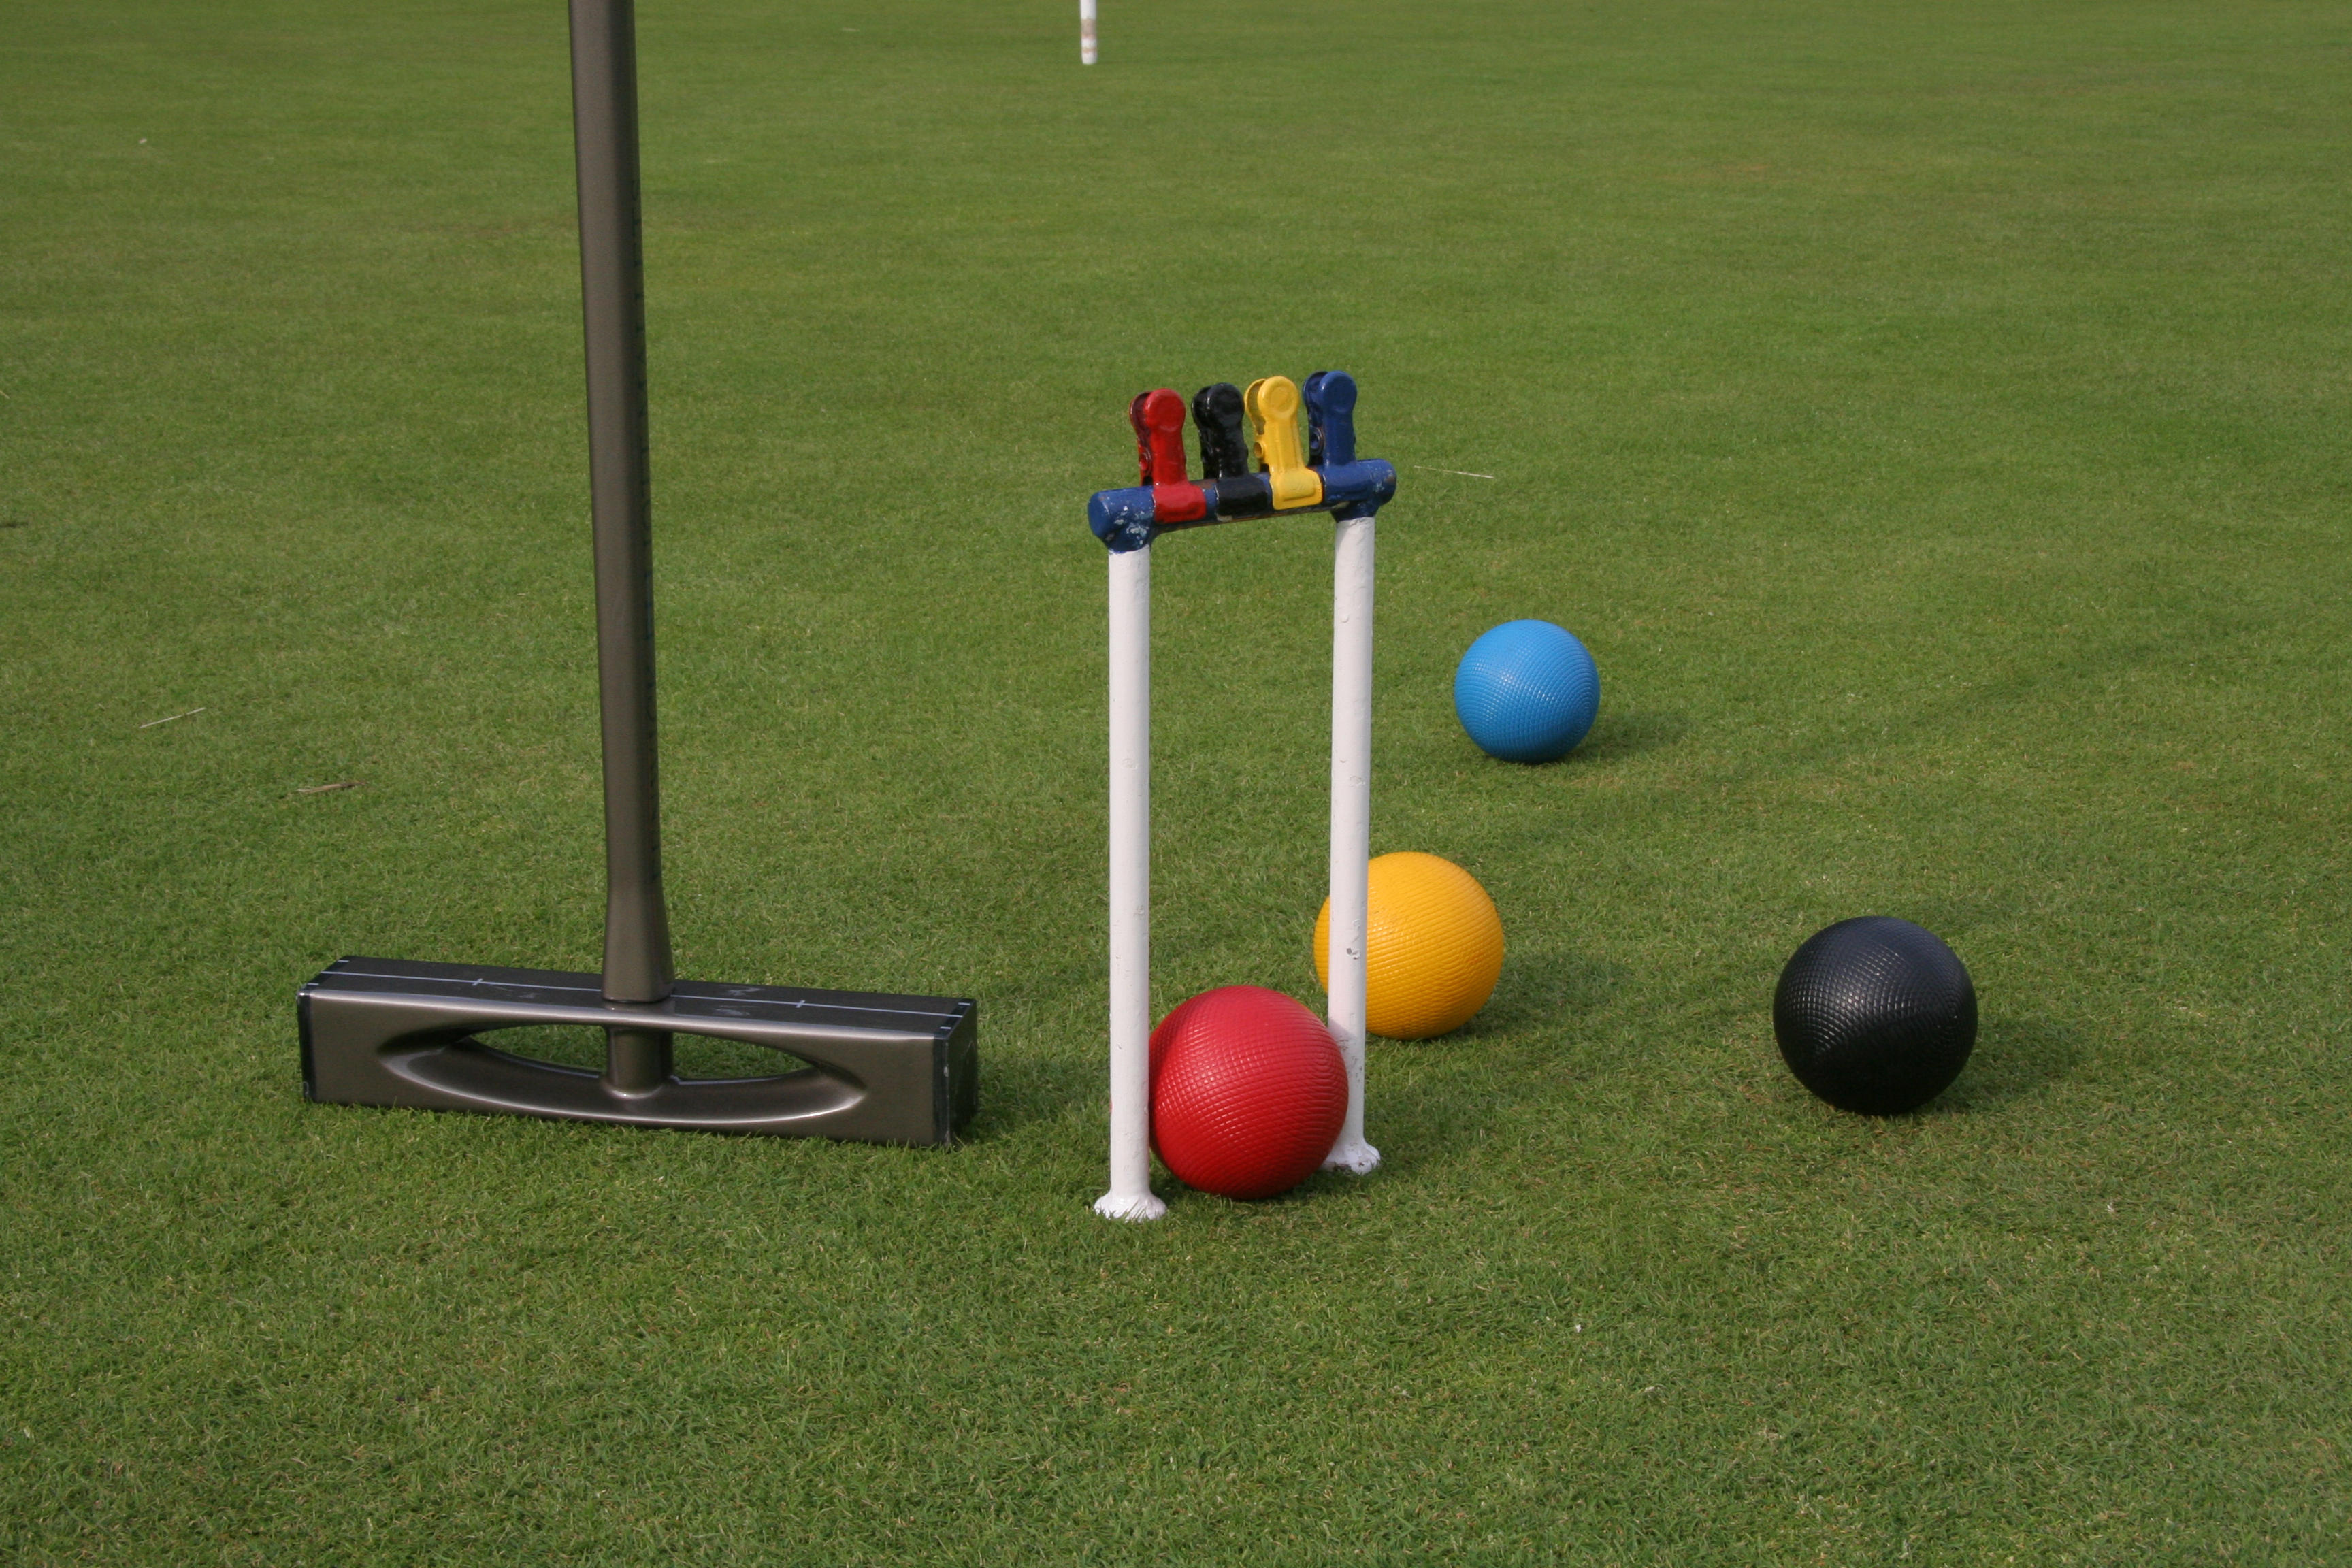 Crocheting Equipment : File:Modern croquet equipment.JPG - Wikipedia, the free encyclopedia